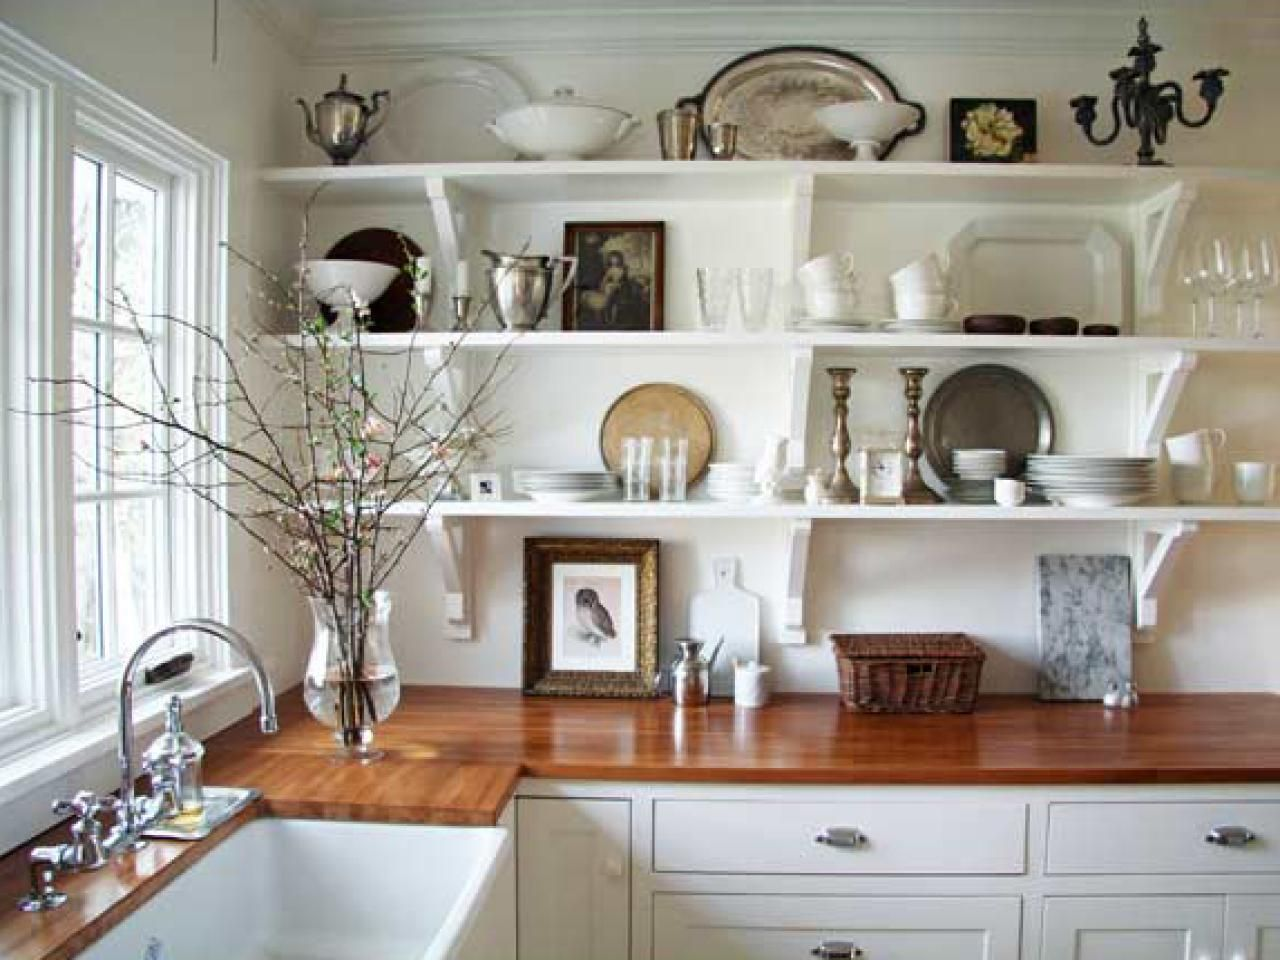 Kitchen Self Design Delectable Smart Organizing Ideas For Small Spaces  Kitchen Pantries Decorating Inspiration